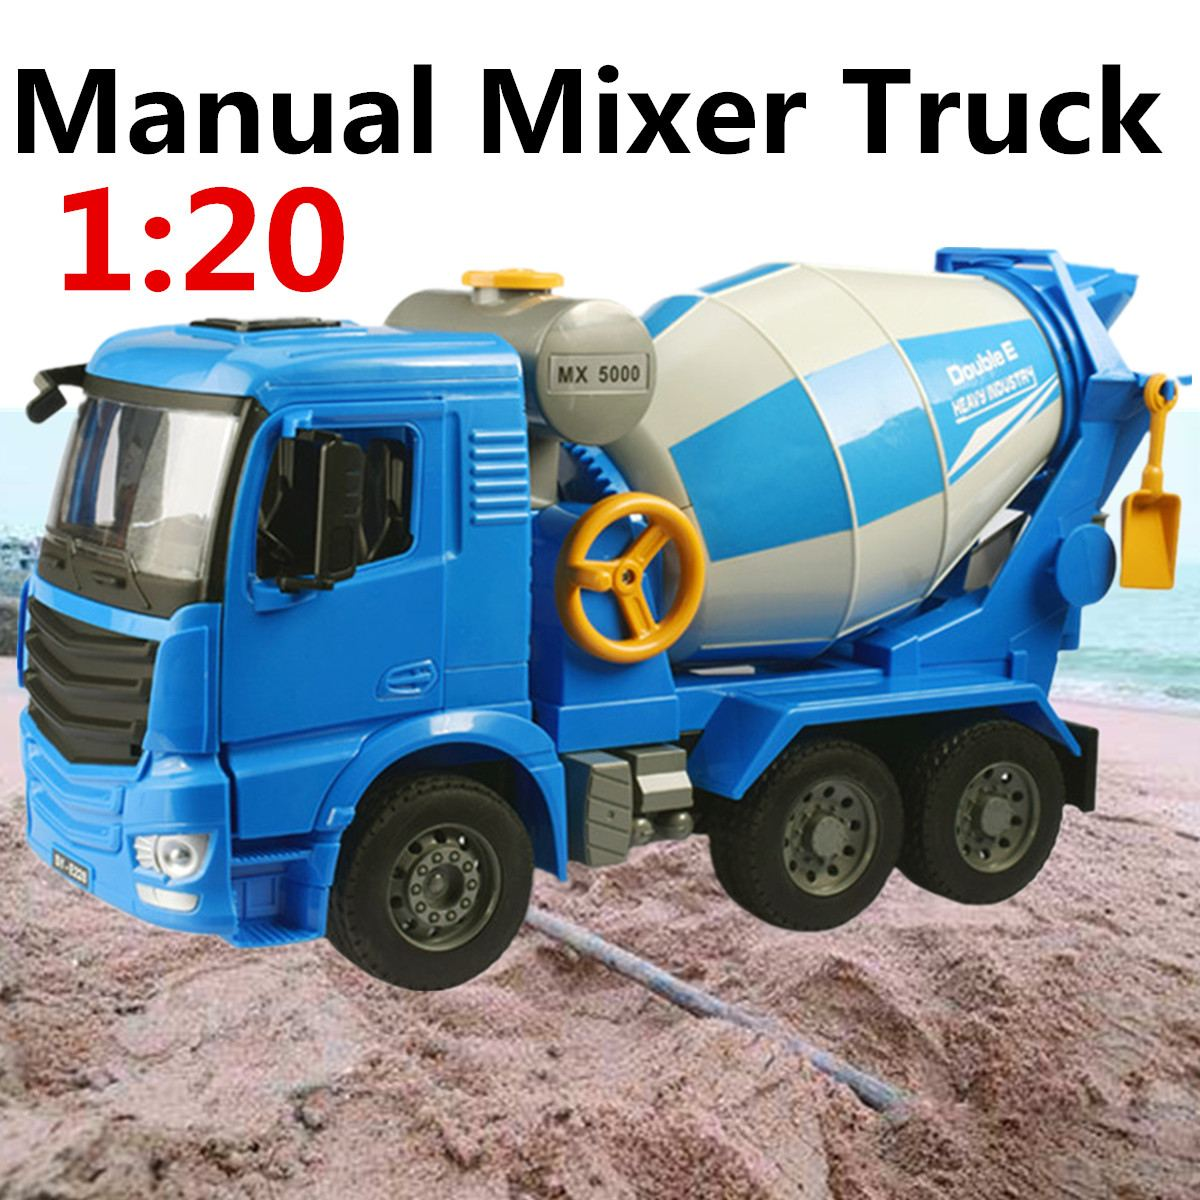 1:20 Scale Engineering Cement Mixer Truck Model ABS Plastic Toy Vehicle Concrete Car Large Engineering Car Kid Children Gift